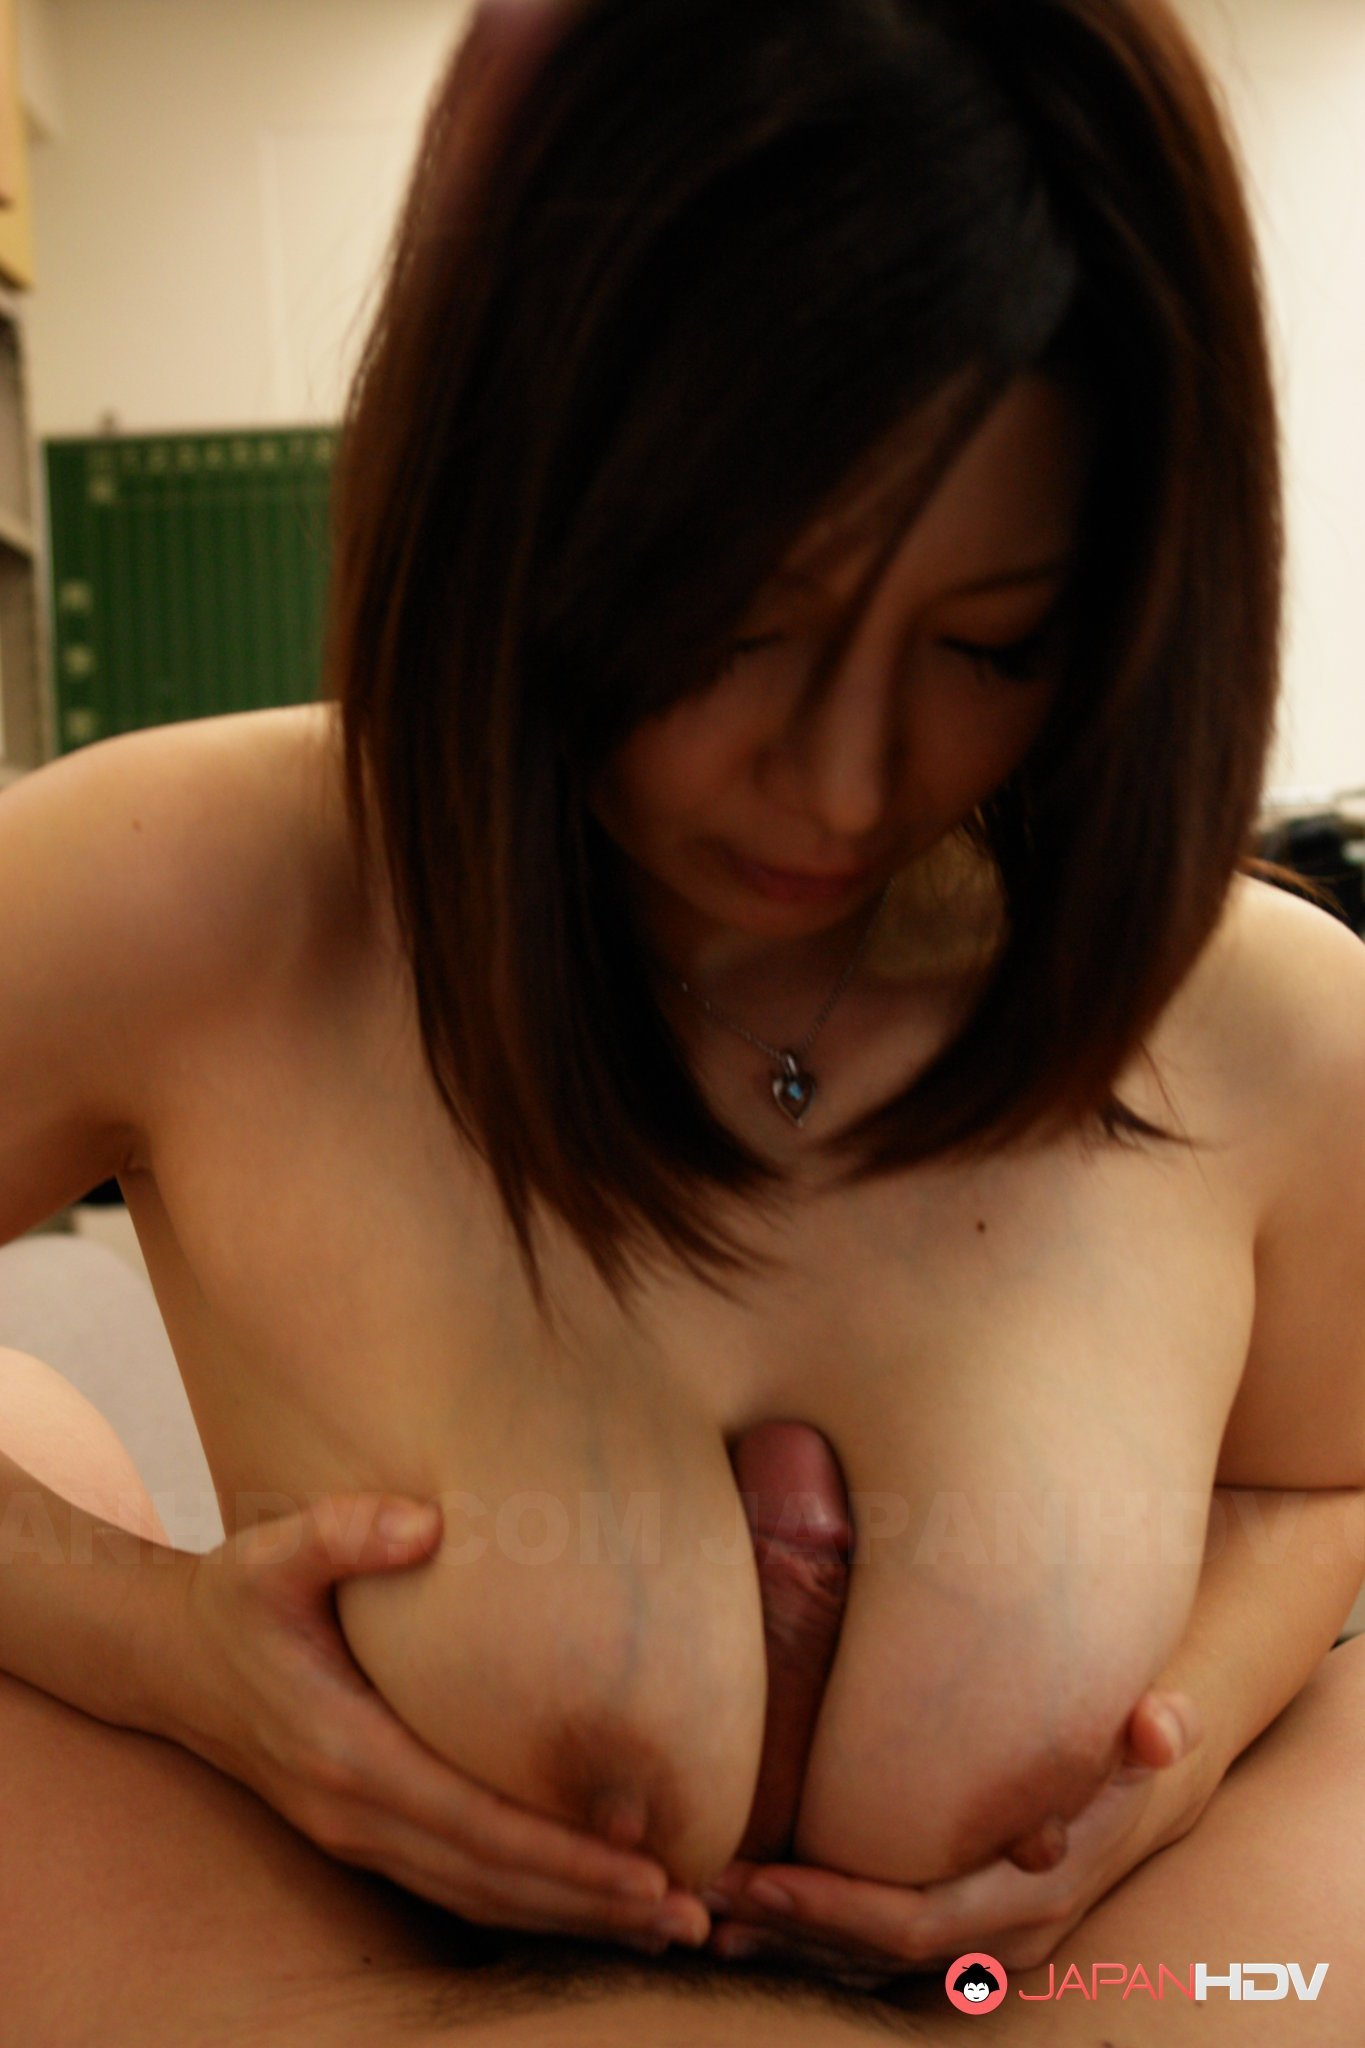 Gerboydy amateur mommy first time